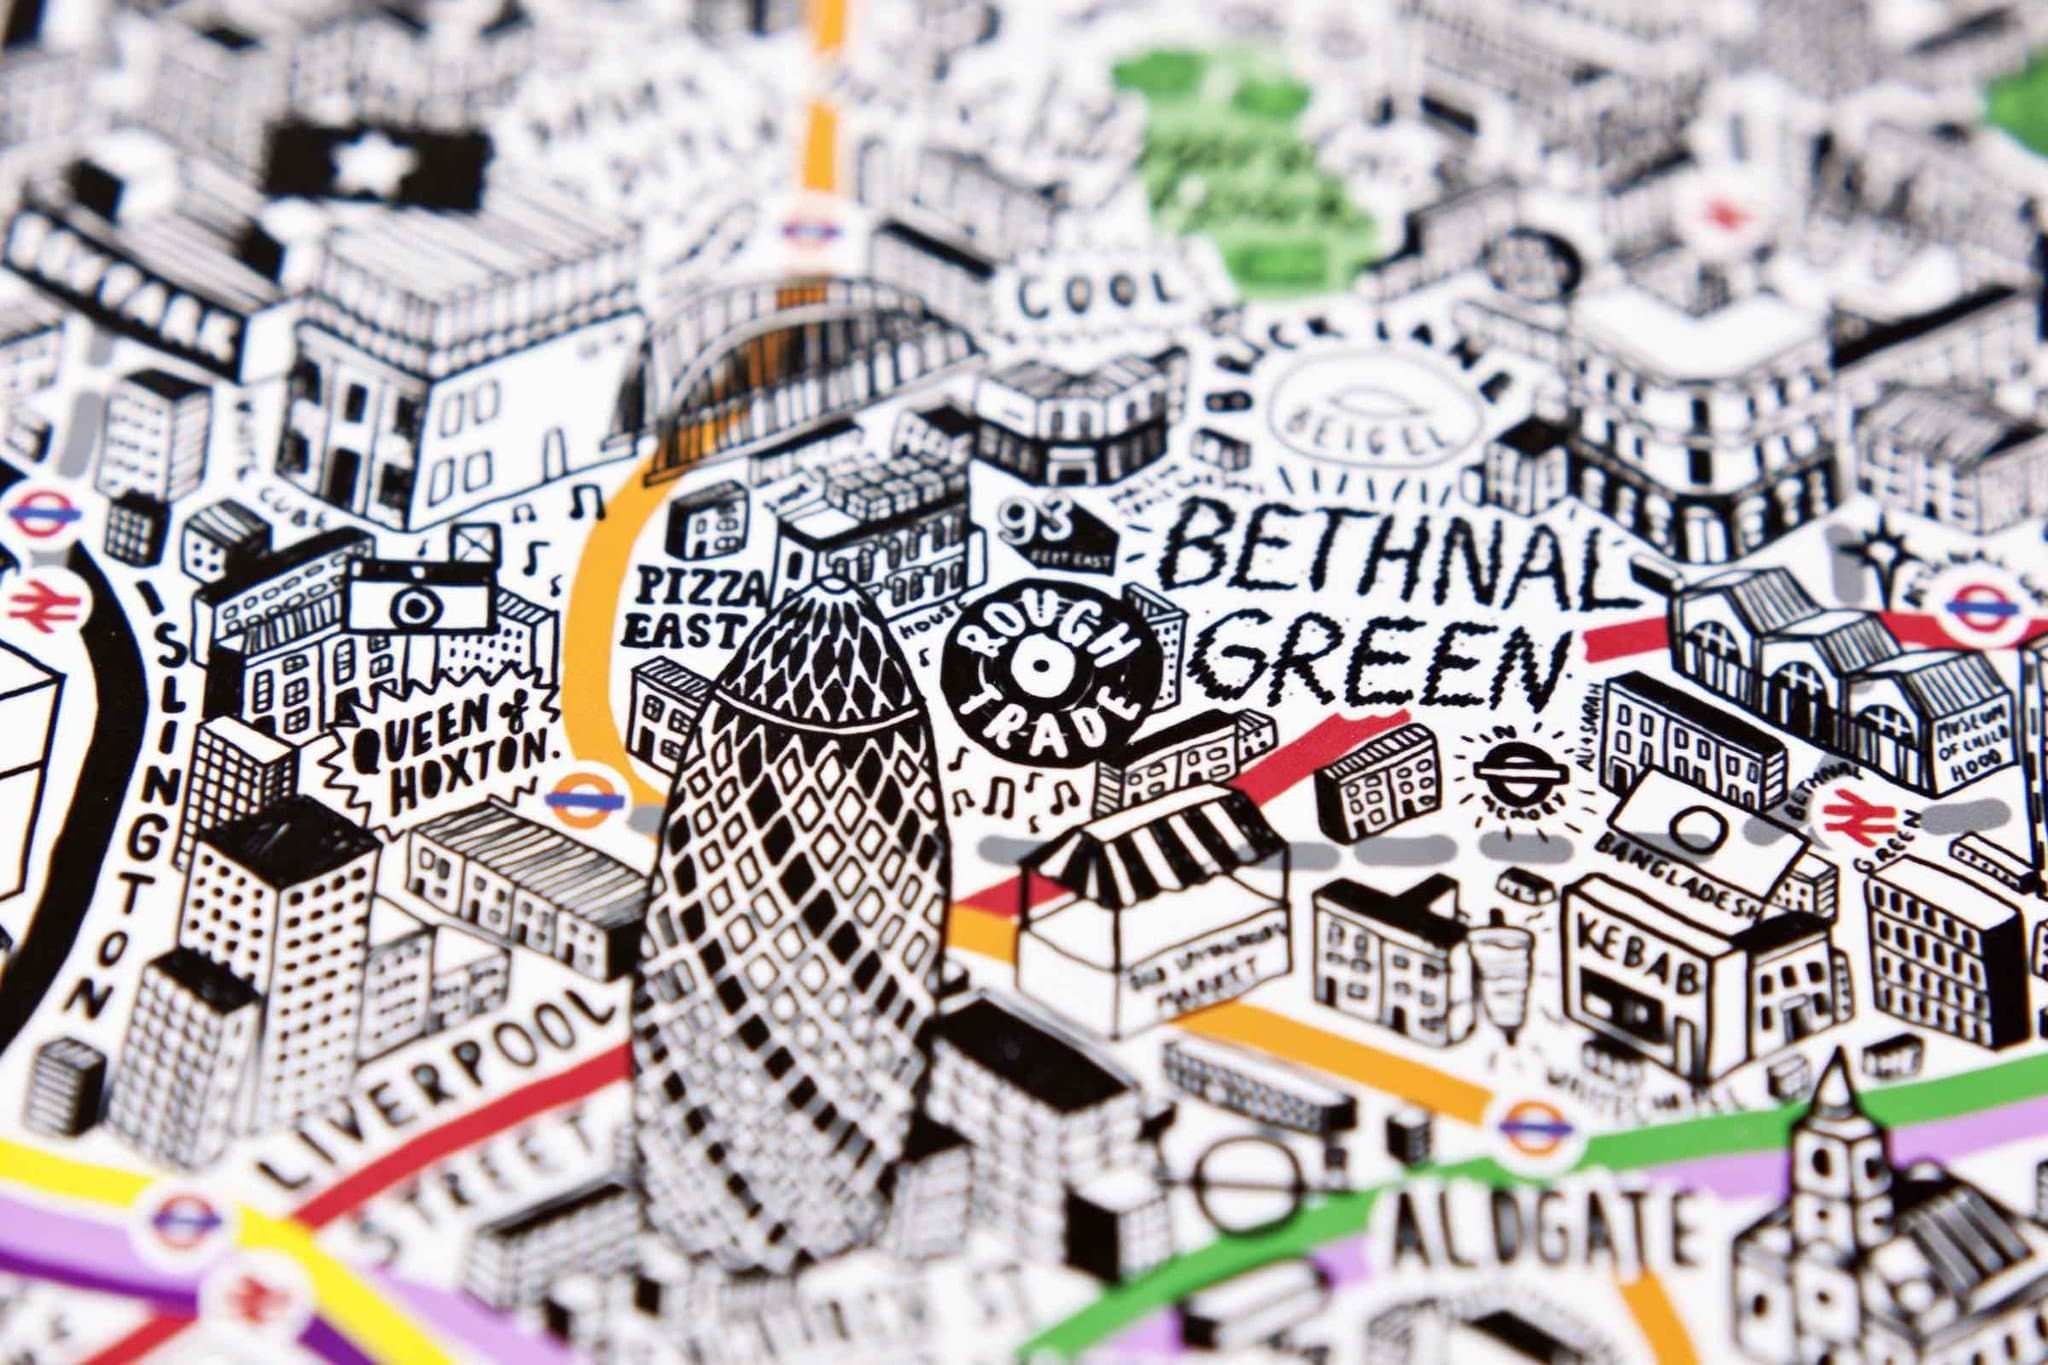 Hand Drawn Map of London We Built This City